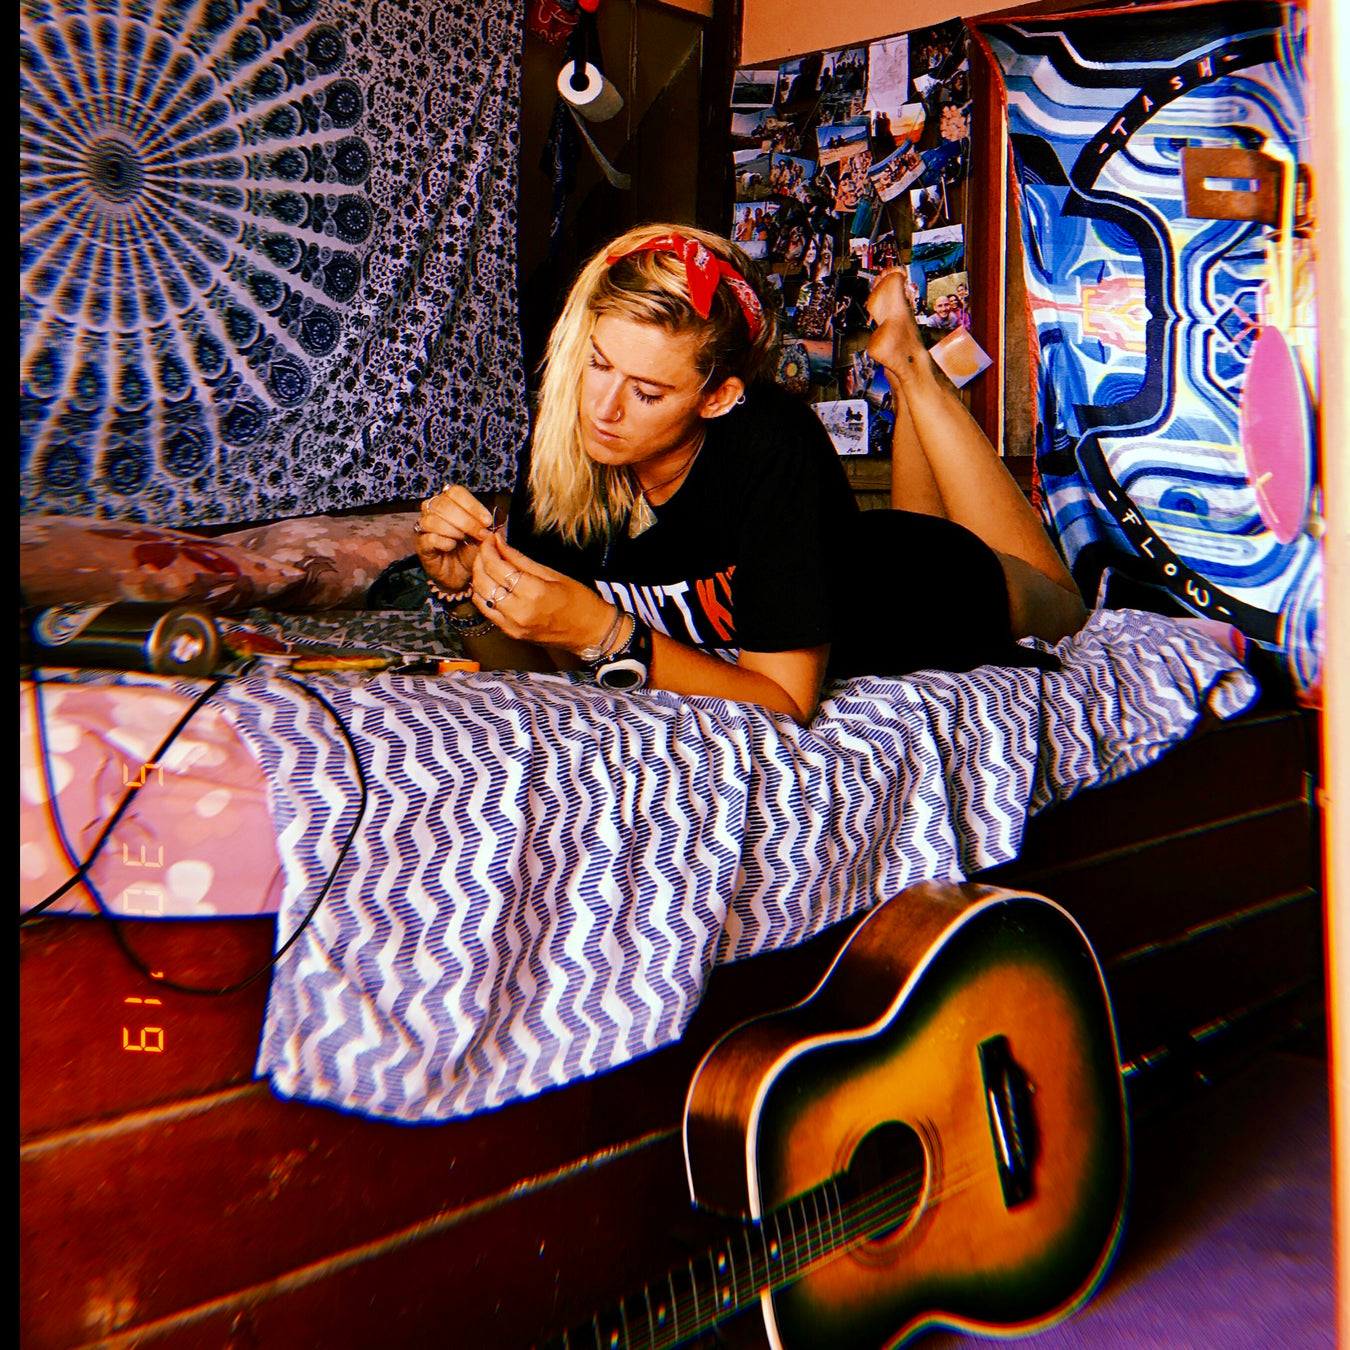 Alice Birnbaum of ABSeas laying on her bed with her guitar at the base